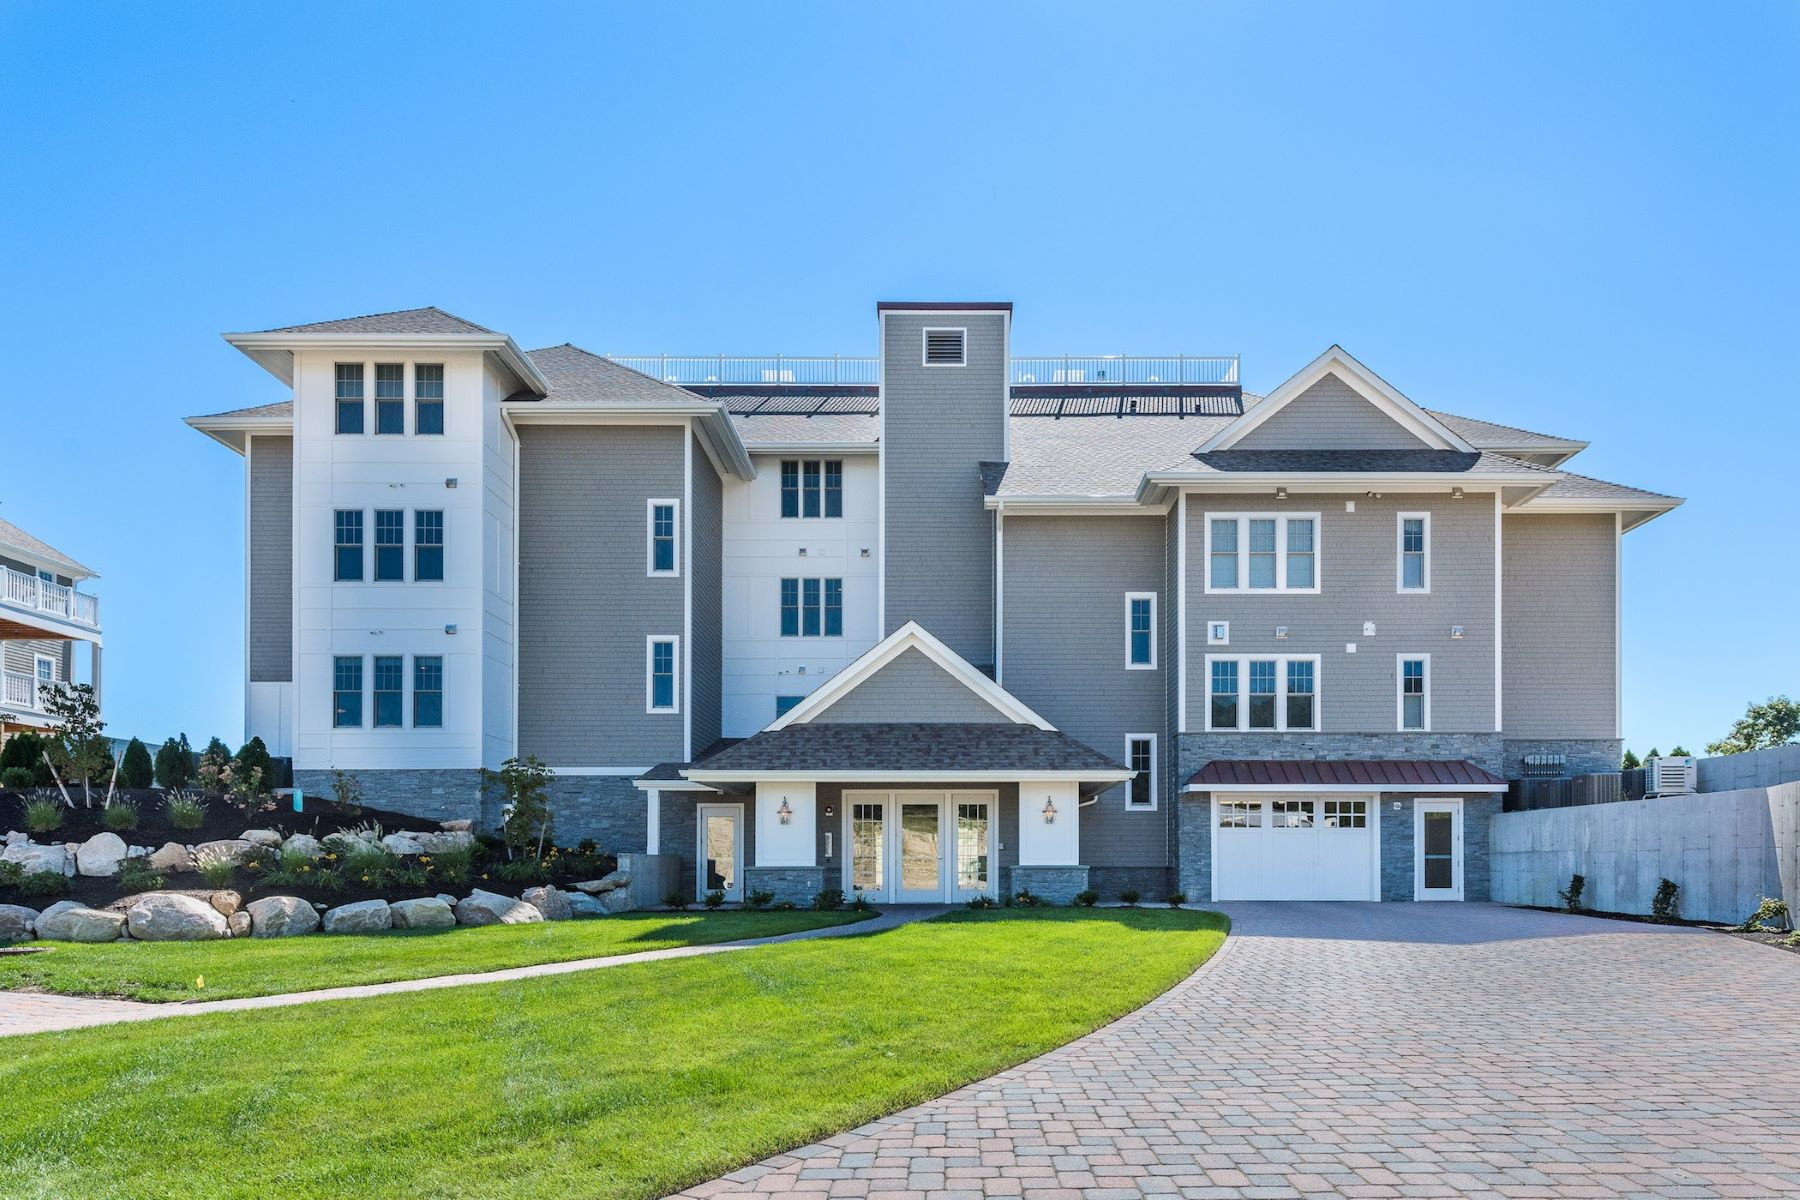 Condominium for Sale at 7 Compass Wy D301, #D301, Westerly, RI 7 Compass Wy D301 D301 Westerly, Rhode Island 02891 United States